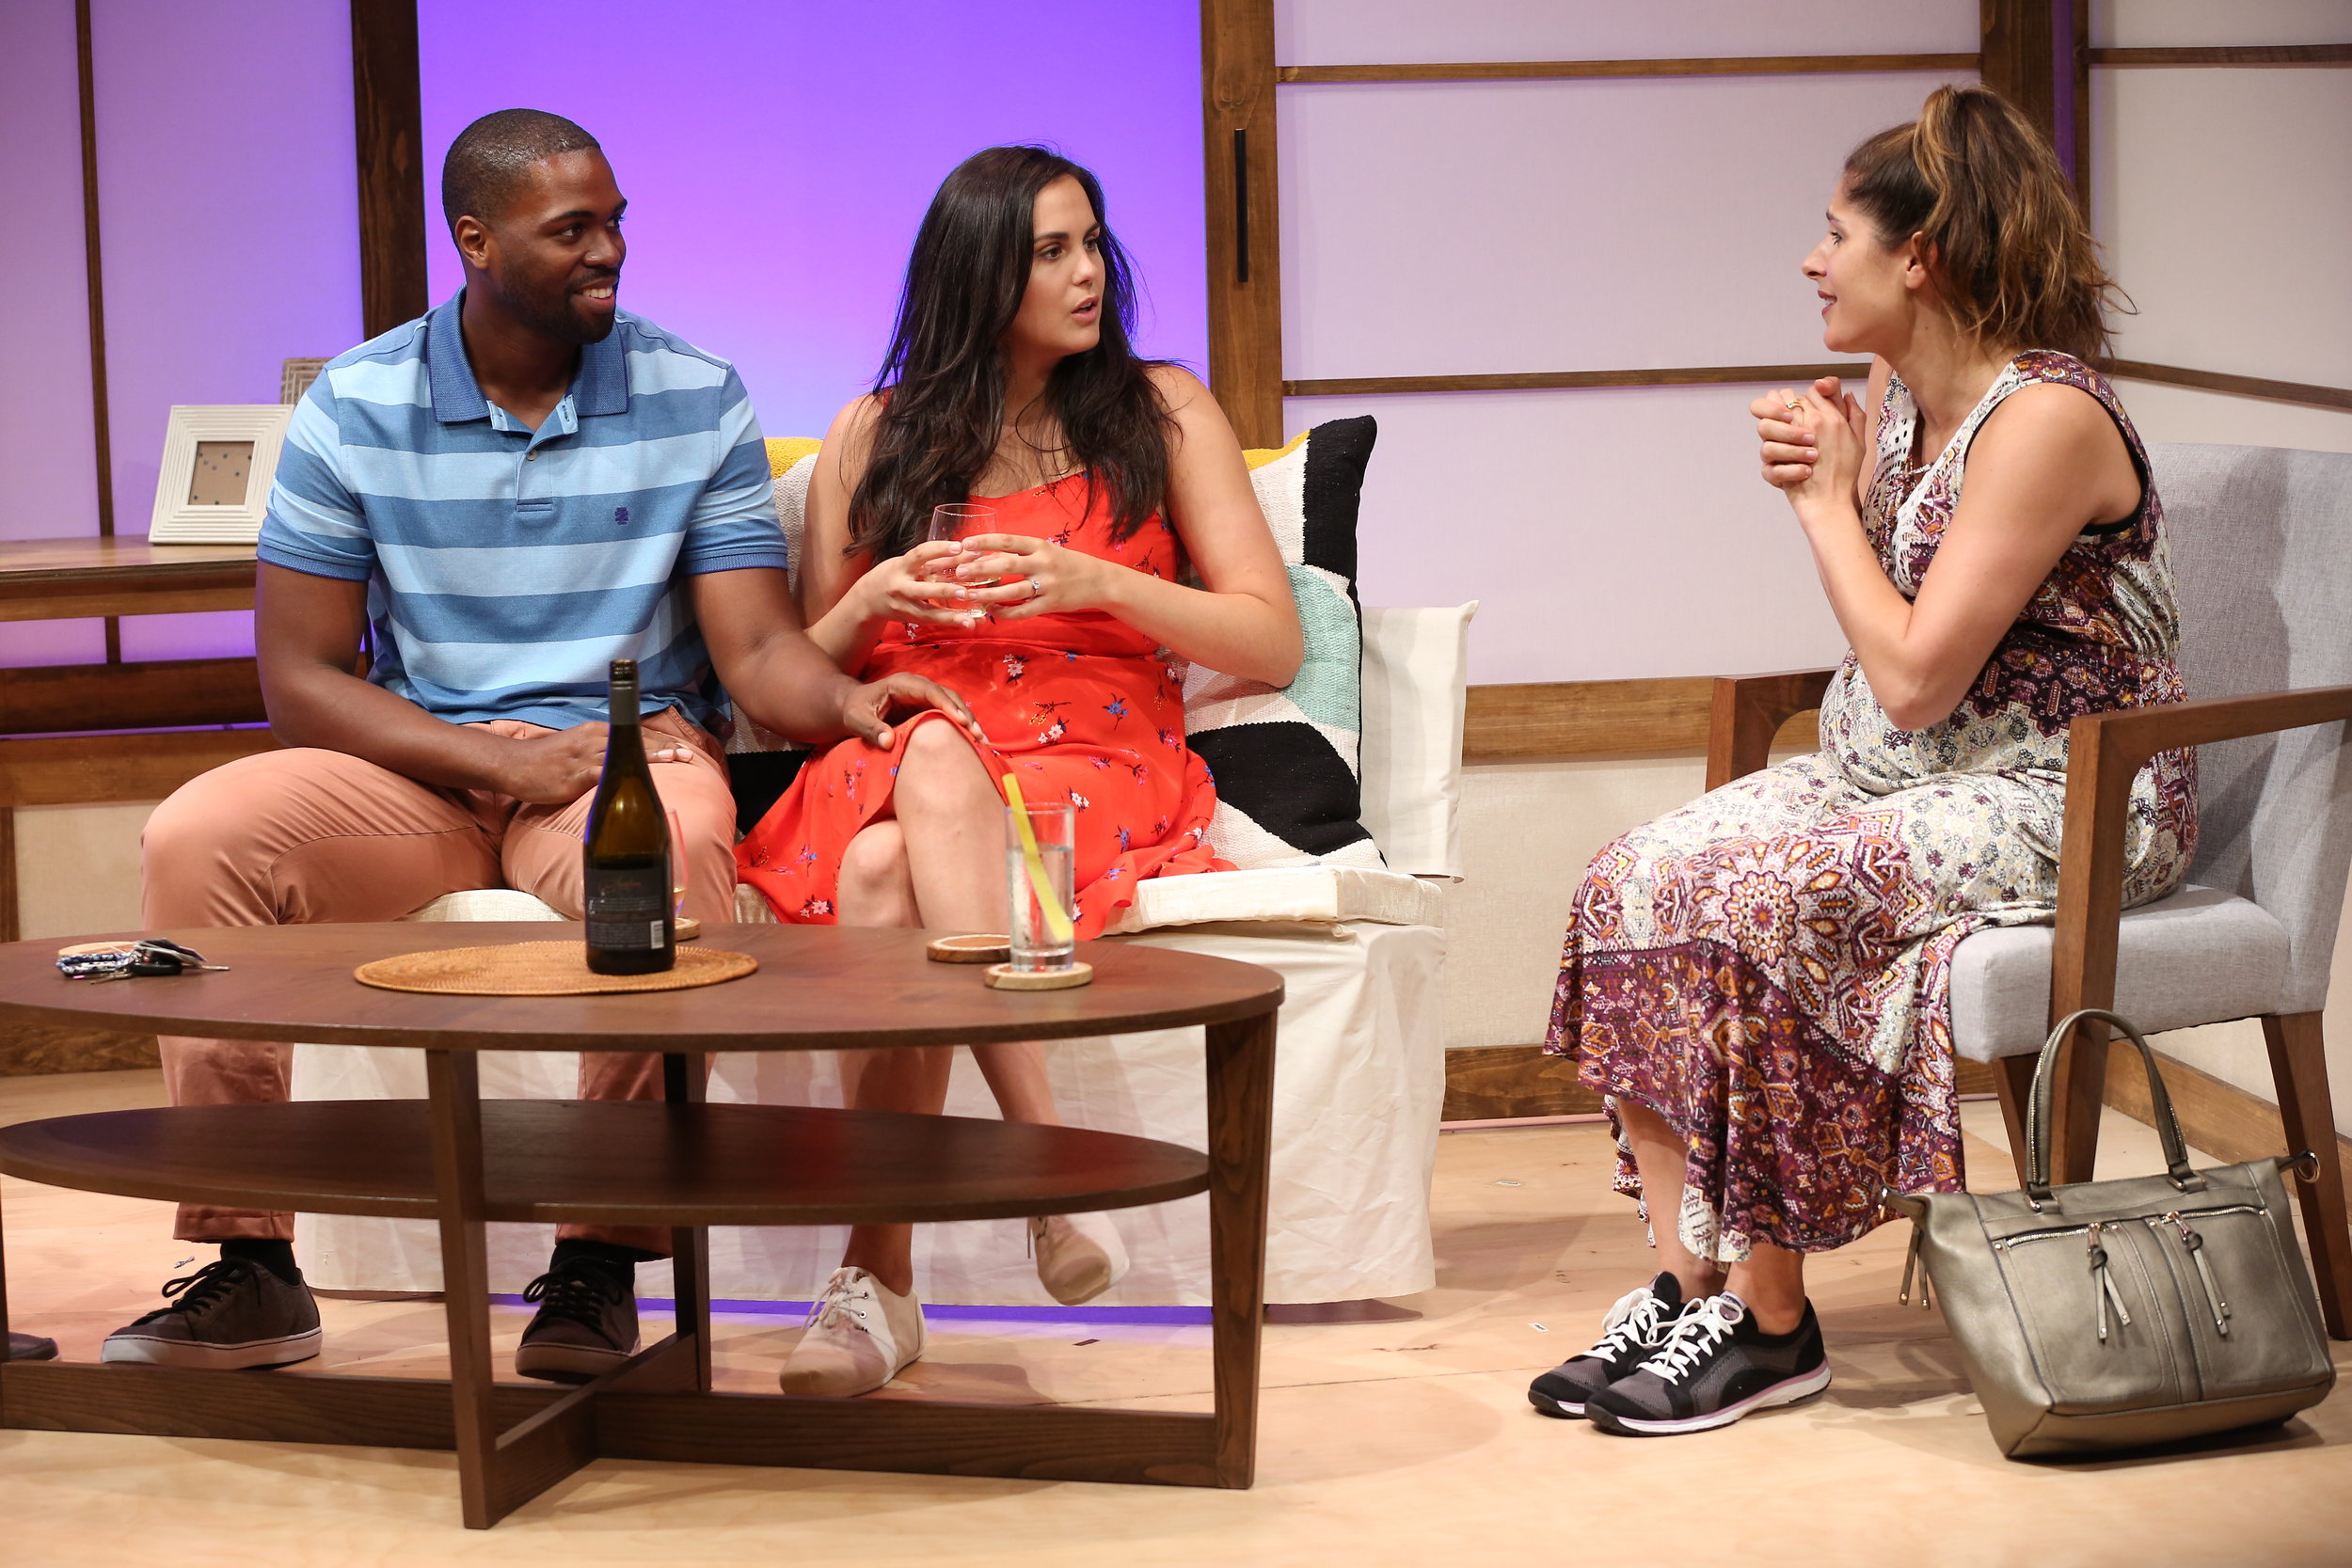 L-R: Donovan Mitchell, Rachel Napoleon, Georgia Ximenes Lifsher in WEDDING BASH by Lindsey Kraft & Andrew Leeds, part of Summer Shorts 2017 at 59E59 Theaters. Photo by Carol Rosegg